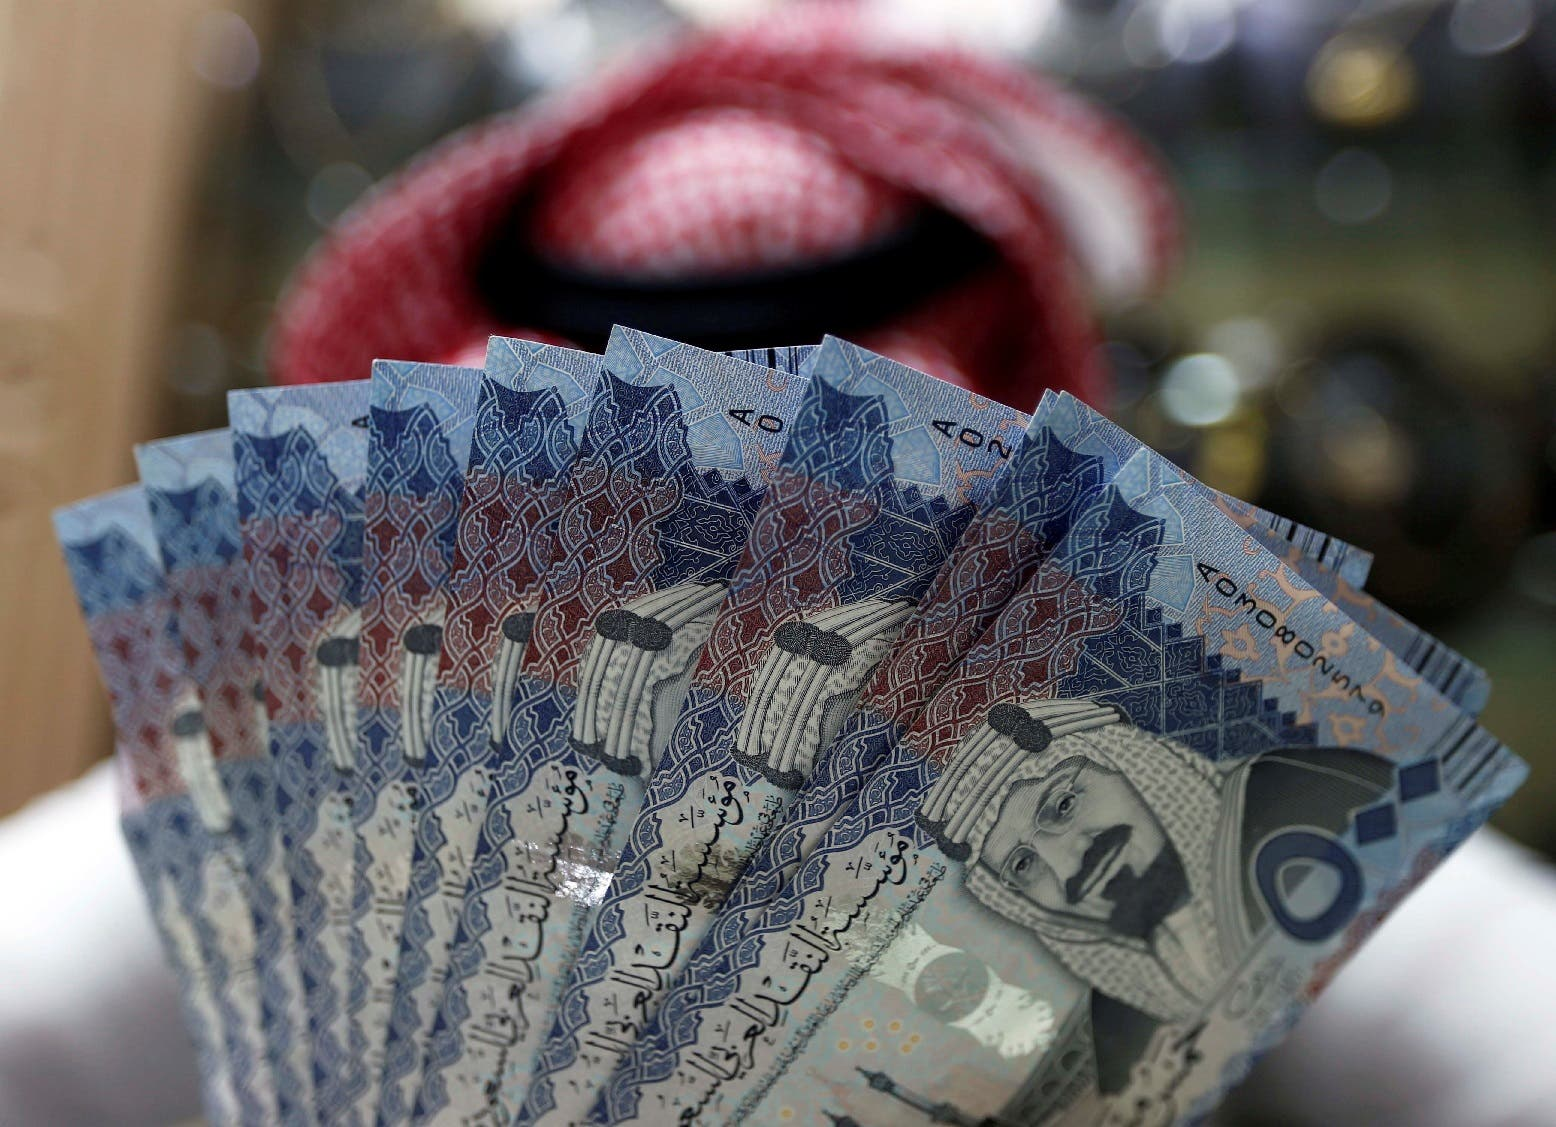 A Saudi money changer displays Saudi Riyal banknotes at a currency exchange shop in Riyadh, Saudi Arabia, July 27, 2017. (Reuters)